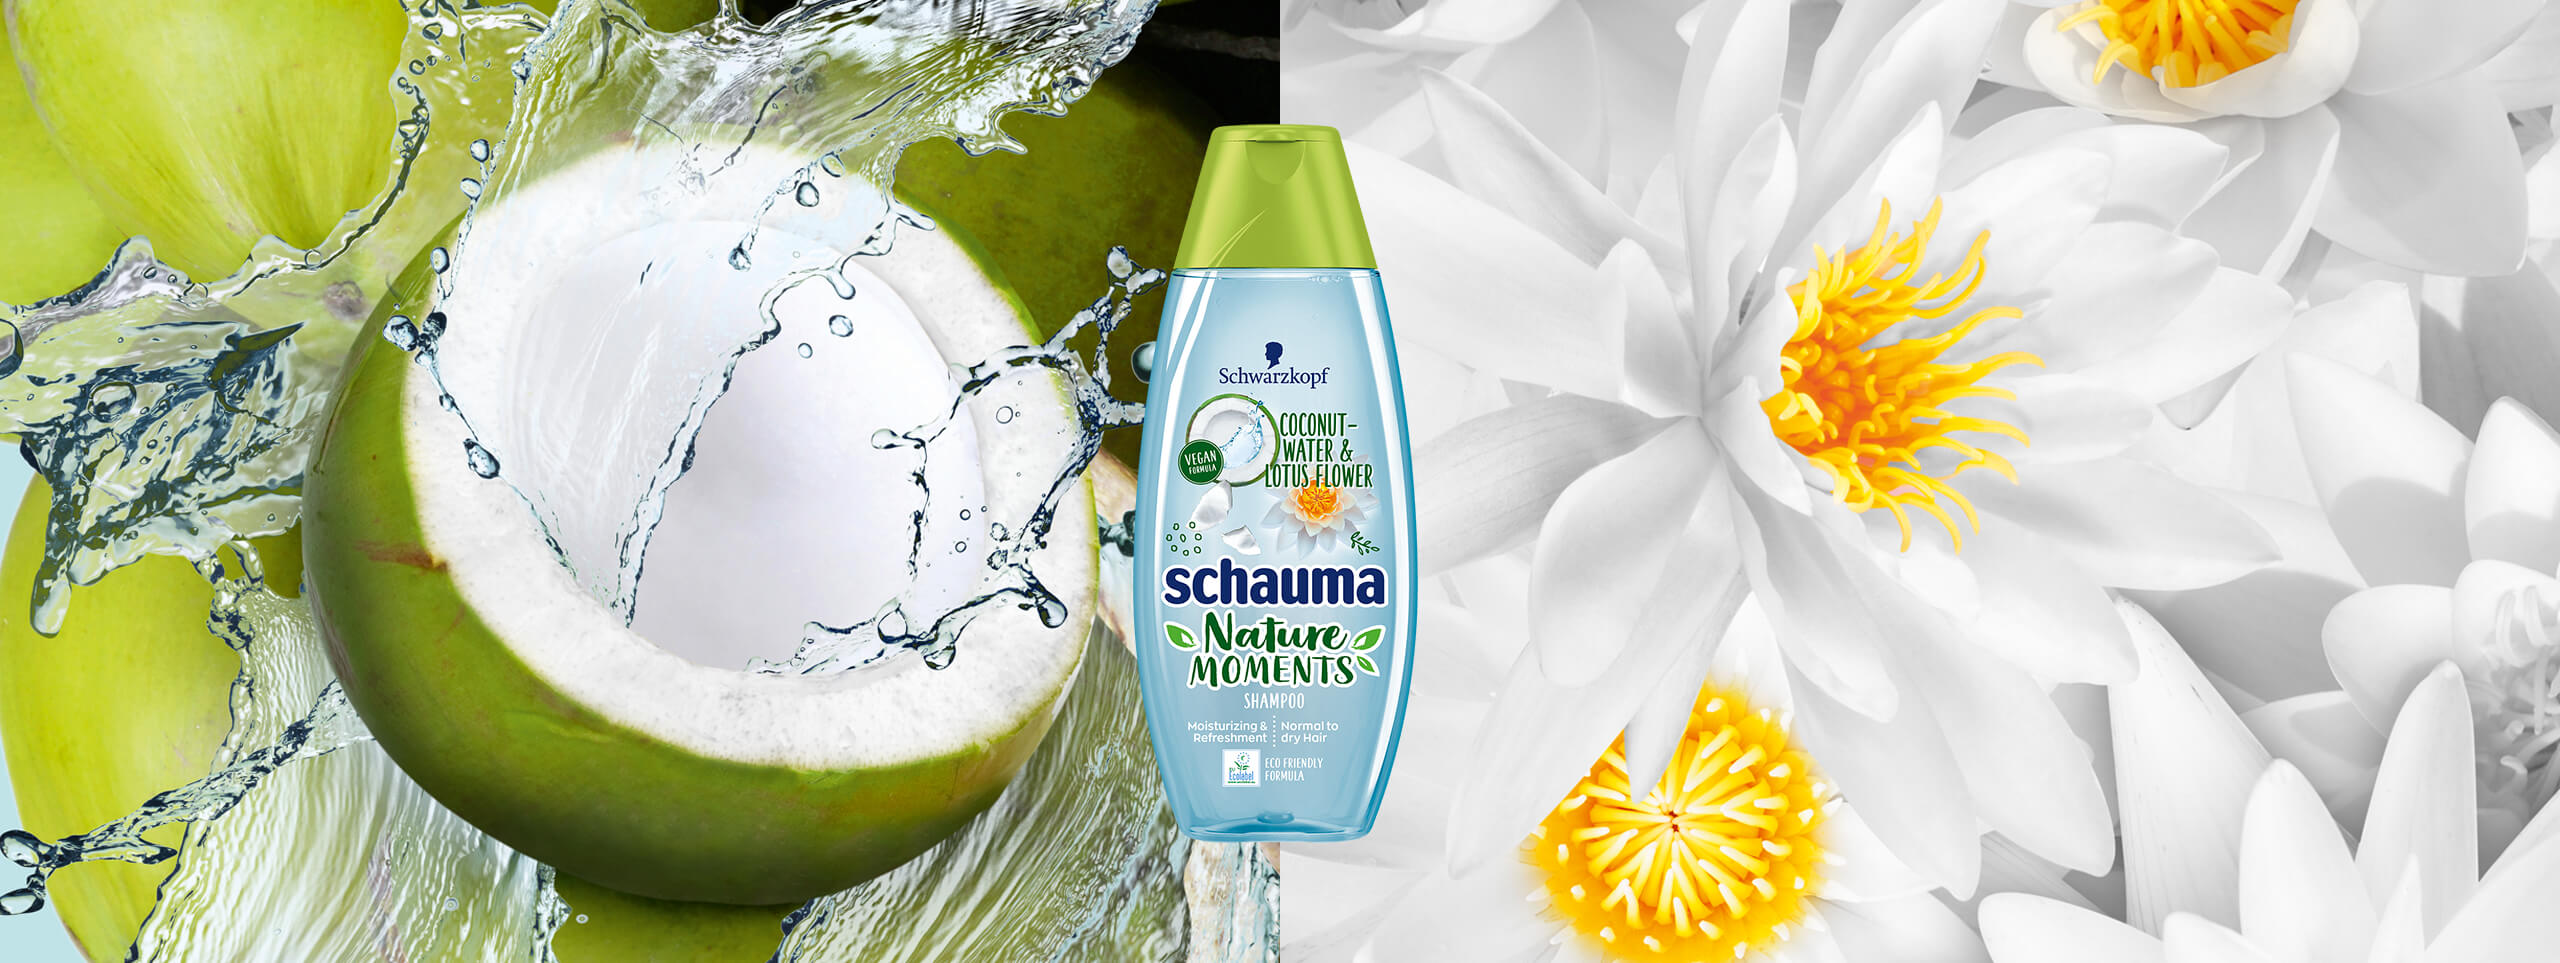 schauma_com_nature_moments_indonesian_coconutwater_2560x963